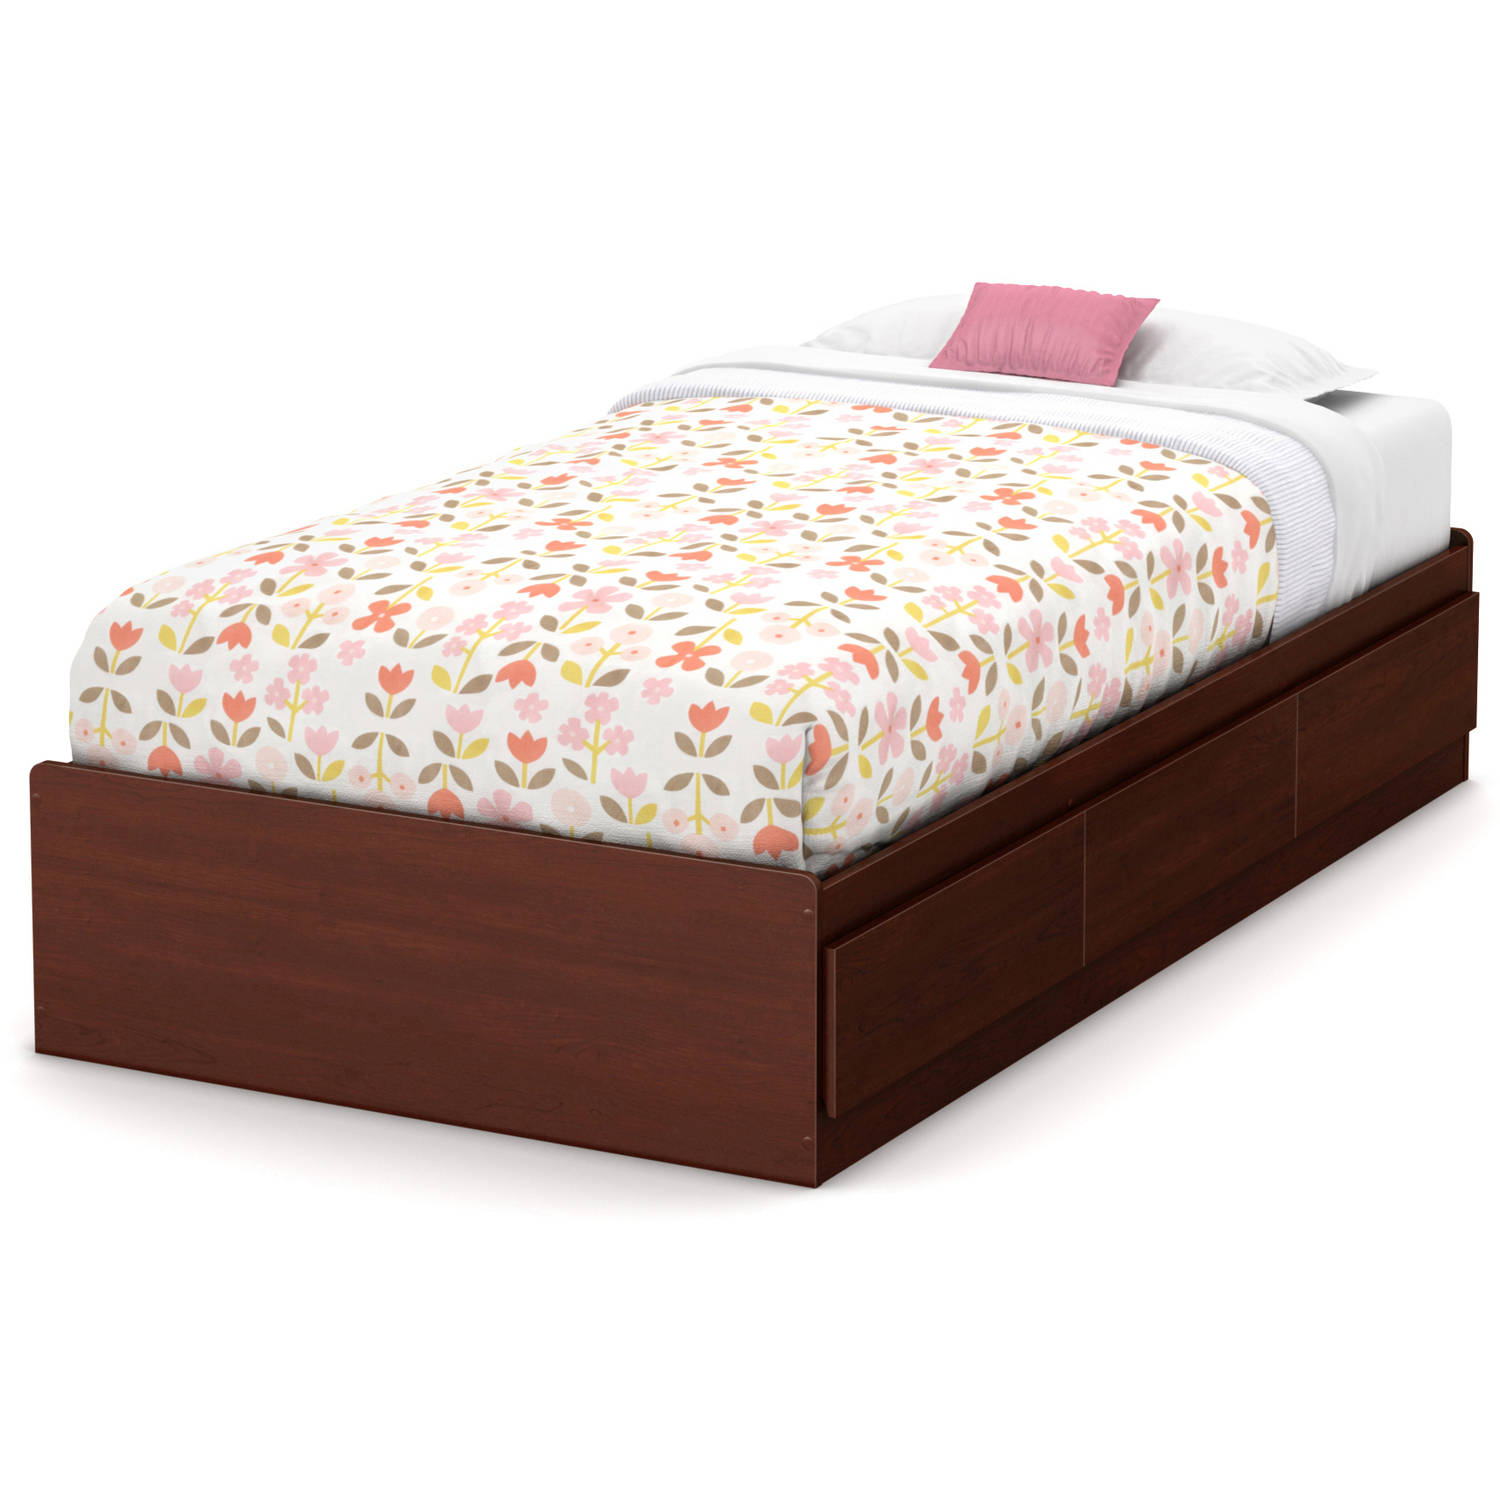 South Shore Little Treasures Twin Mates Bed with 3 Drawers, 39'', Royal Cherry